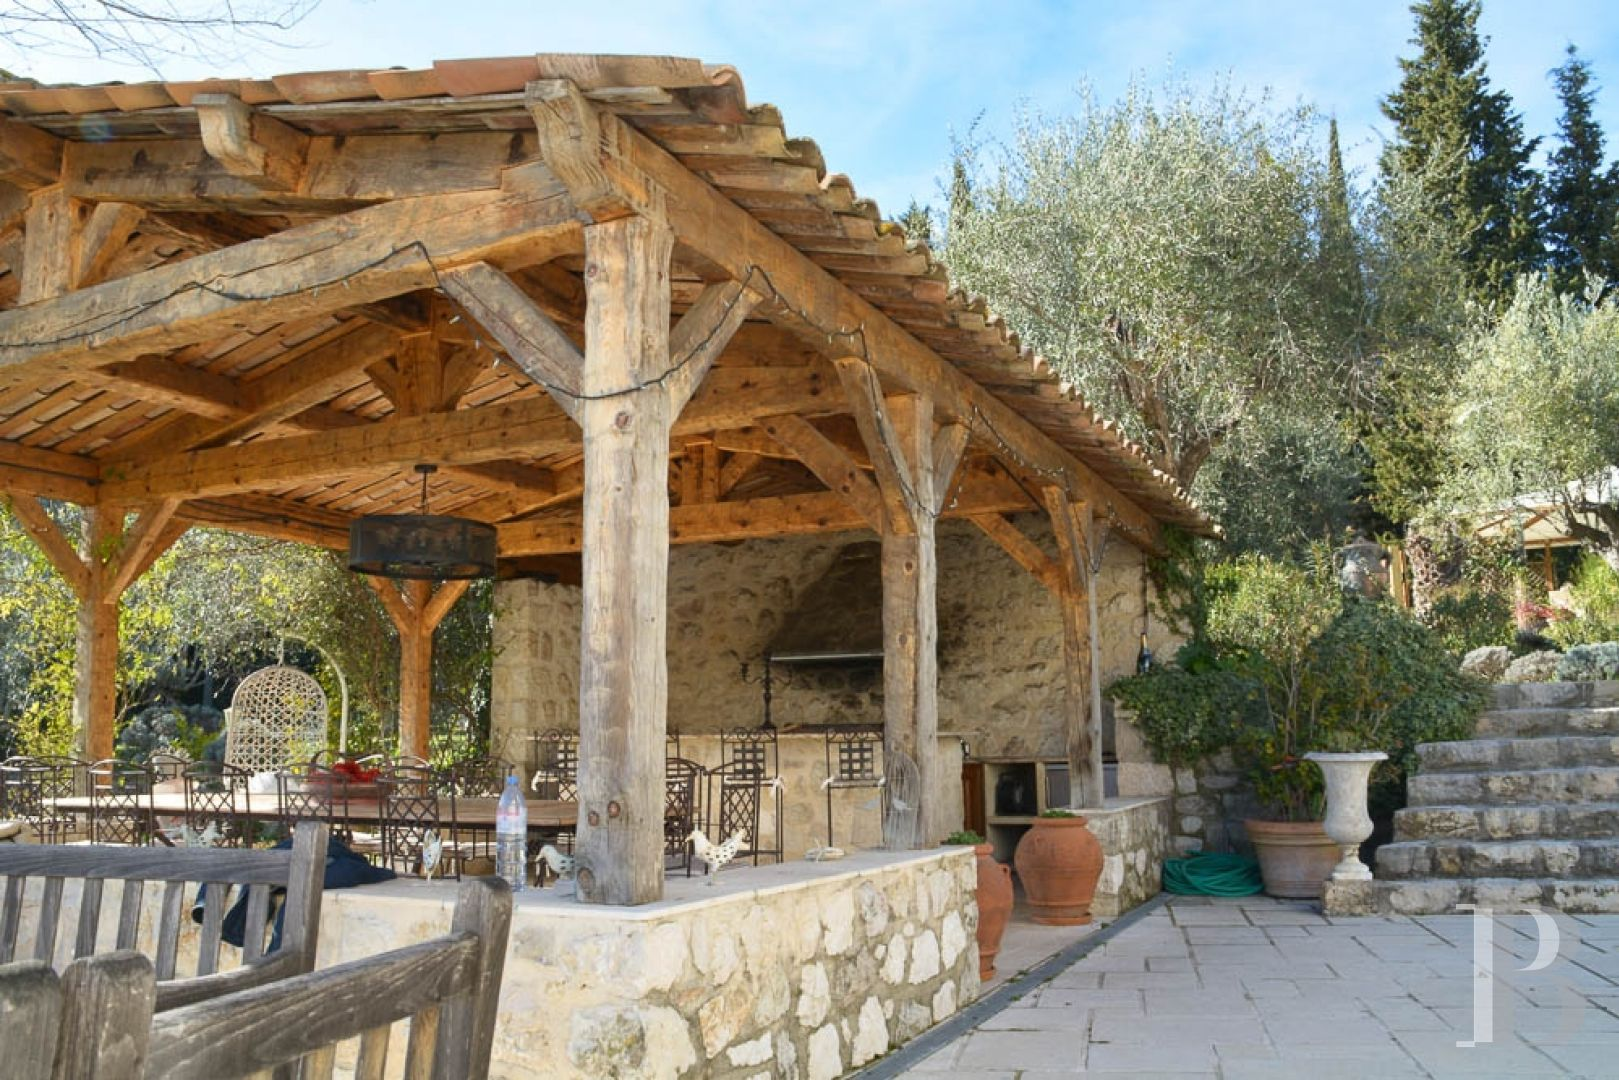 property for sale France provence cote dazur residences traditional - 9 zoom